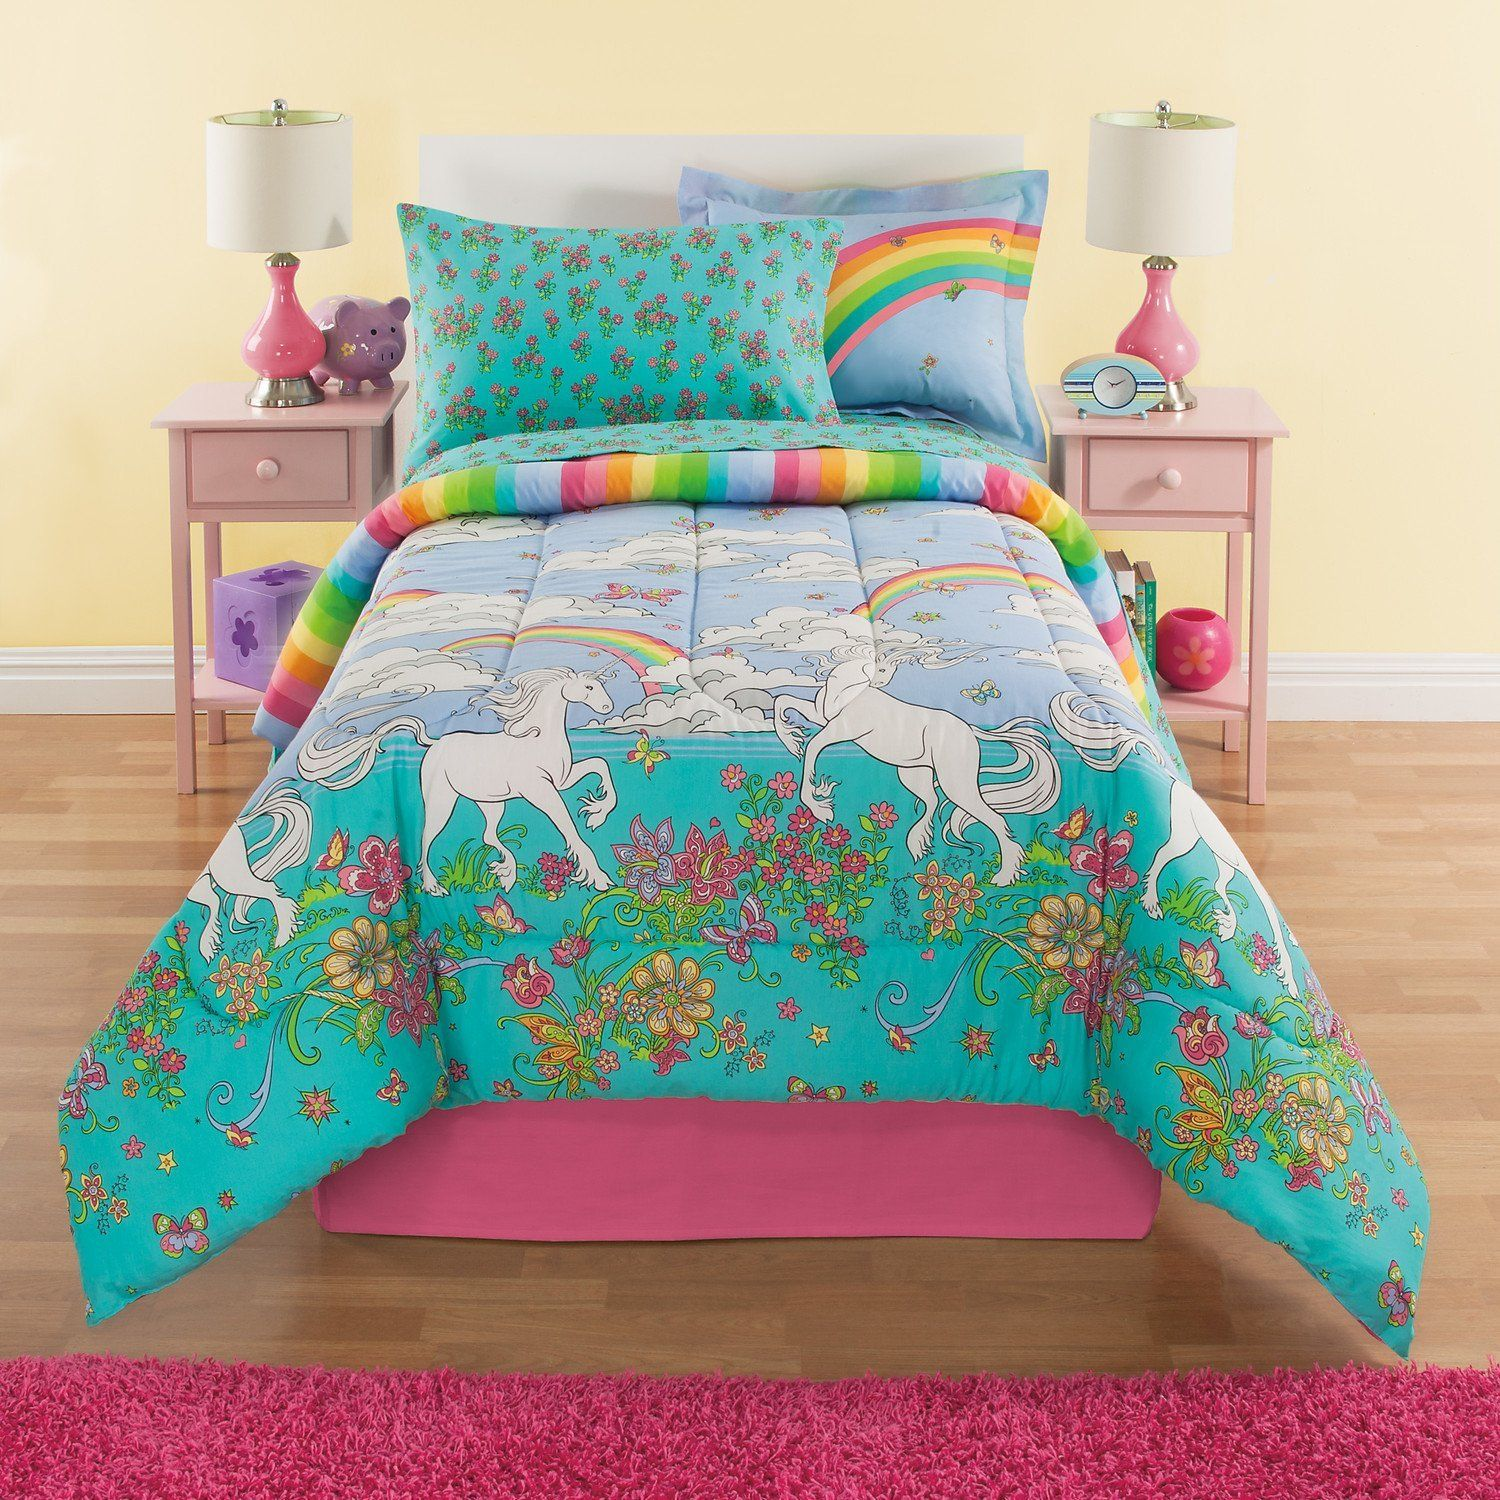 Rainbows & Unicorns Girls Full forter Set 8 Piece Bed In A Bag